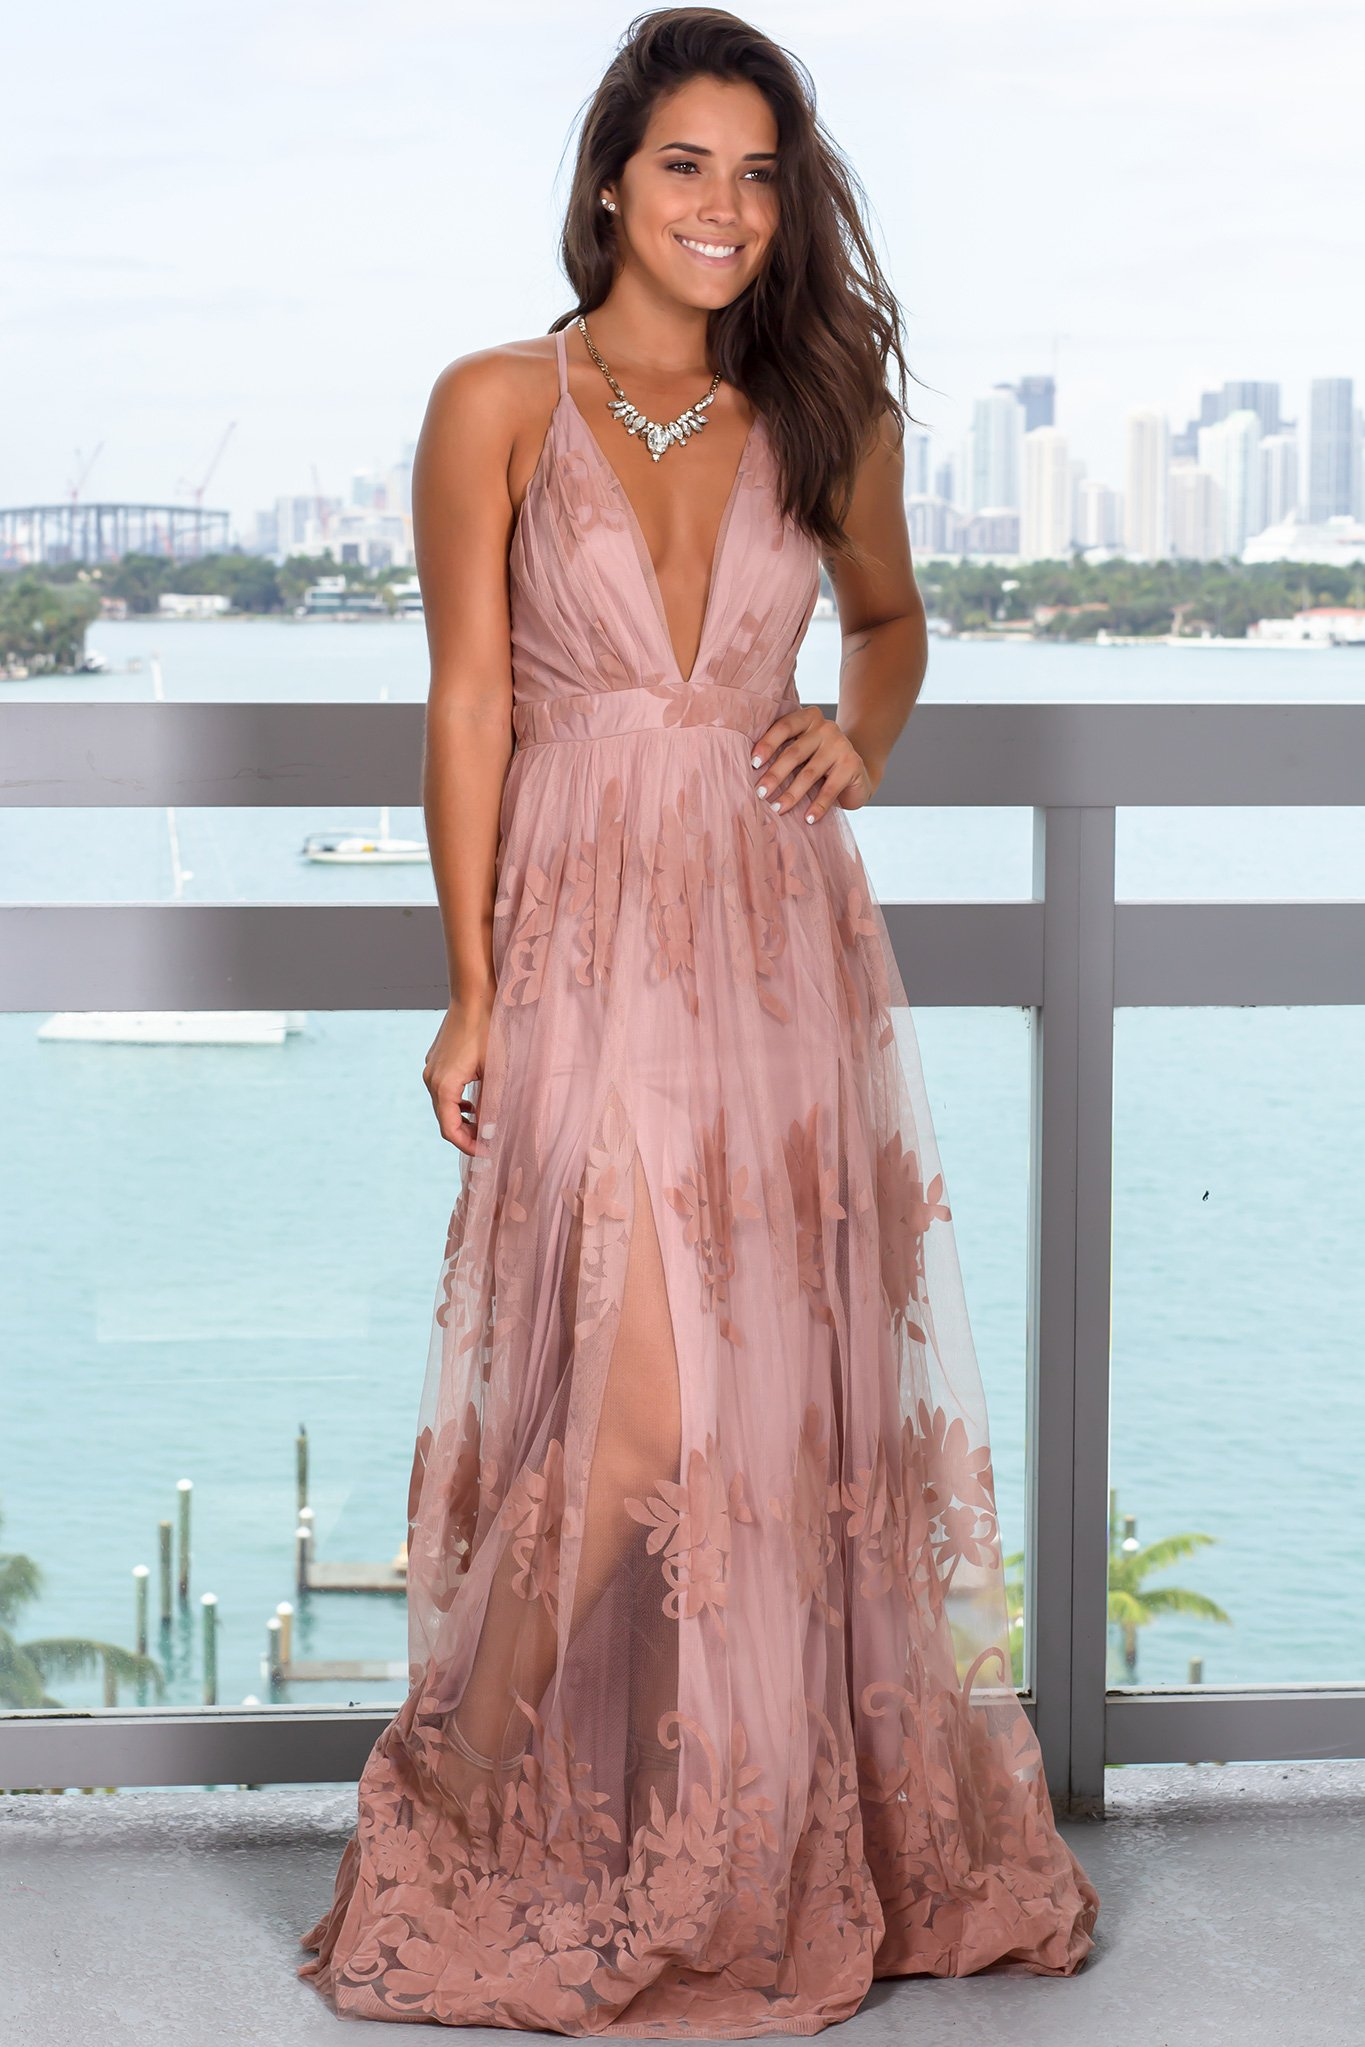 Blush Floral Tulle Maxi Dress With Criss Cross Back Maxi Dresses Saved By The Dress Blush Dress Long Blush Floral Dress Dresses